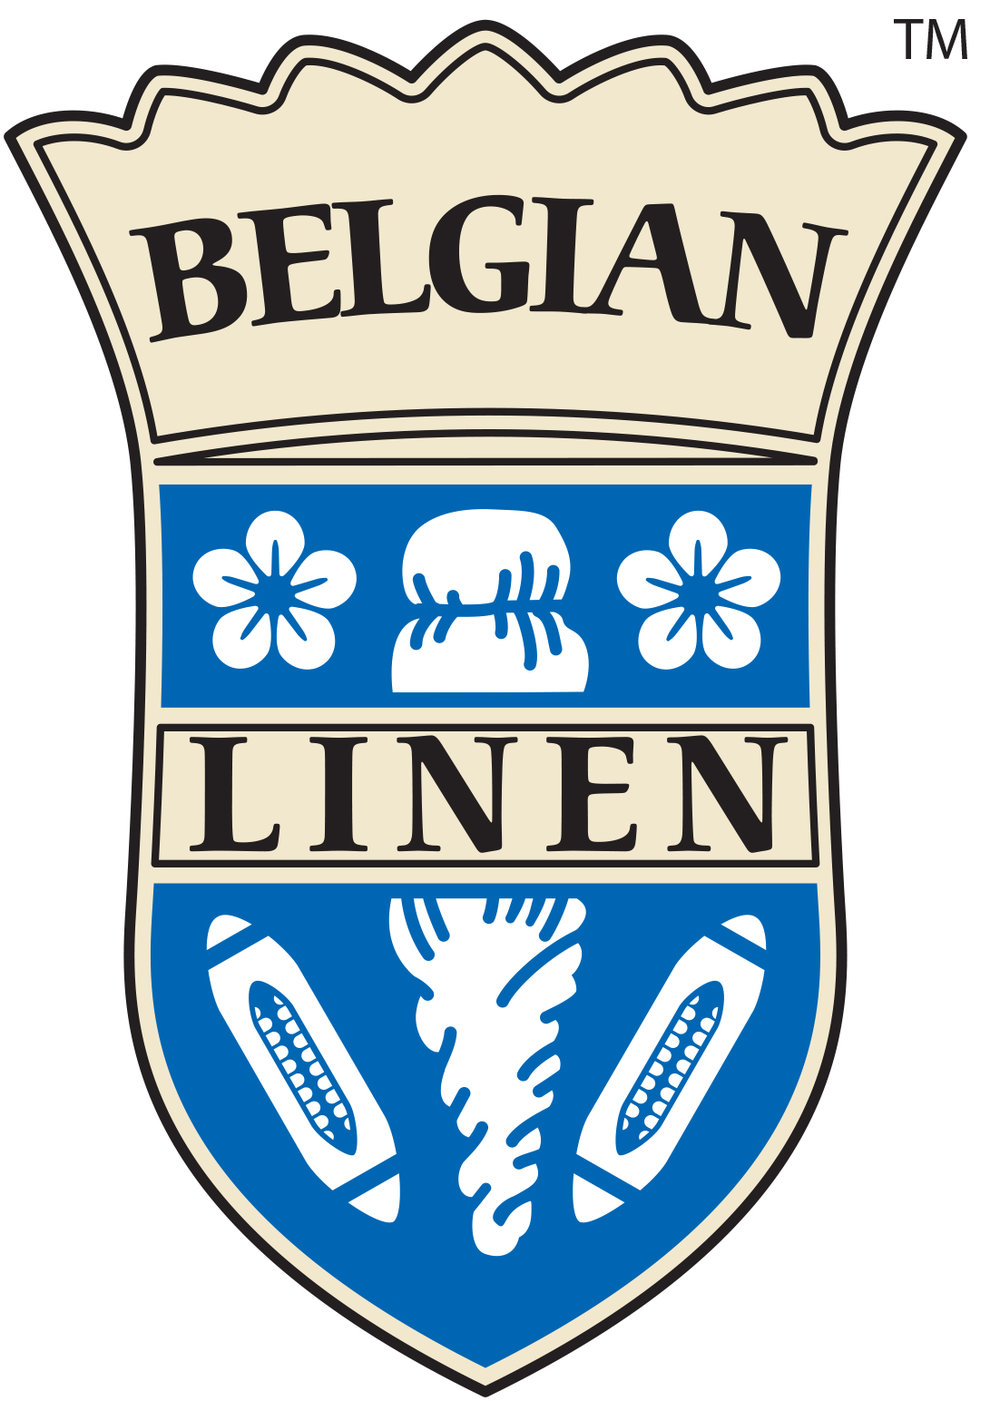 """By choosing Belgian Linen™, you choose for the finest Linen in the world."" - Belgian Flax and Linen Association"